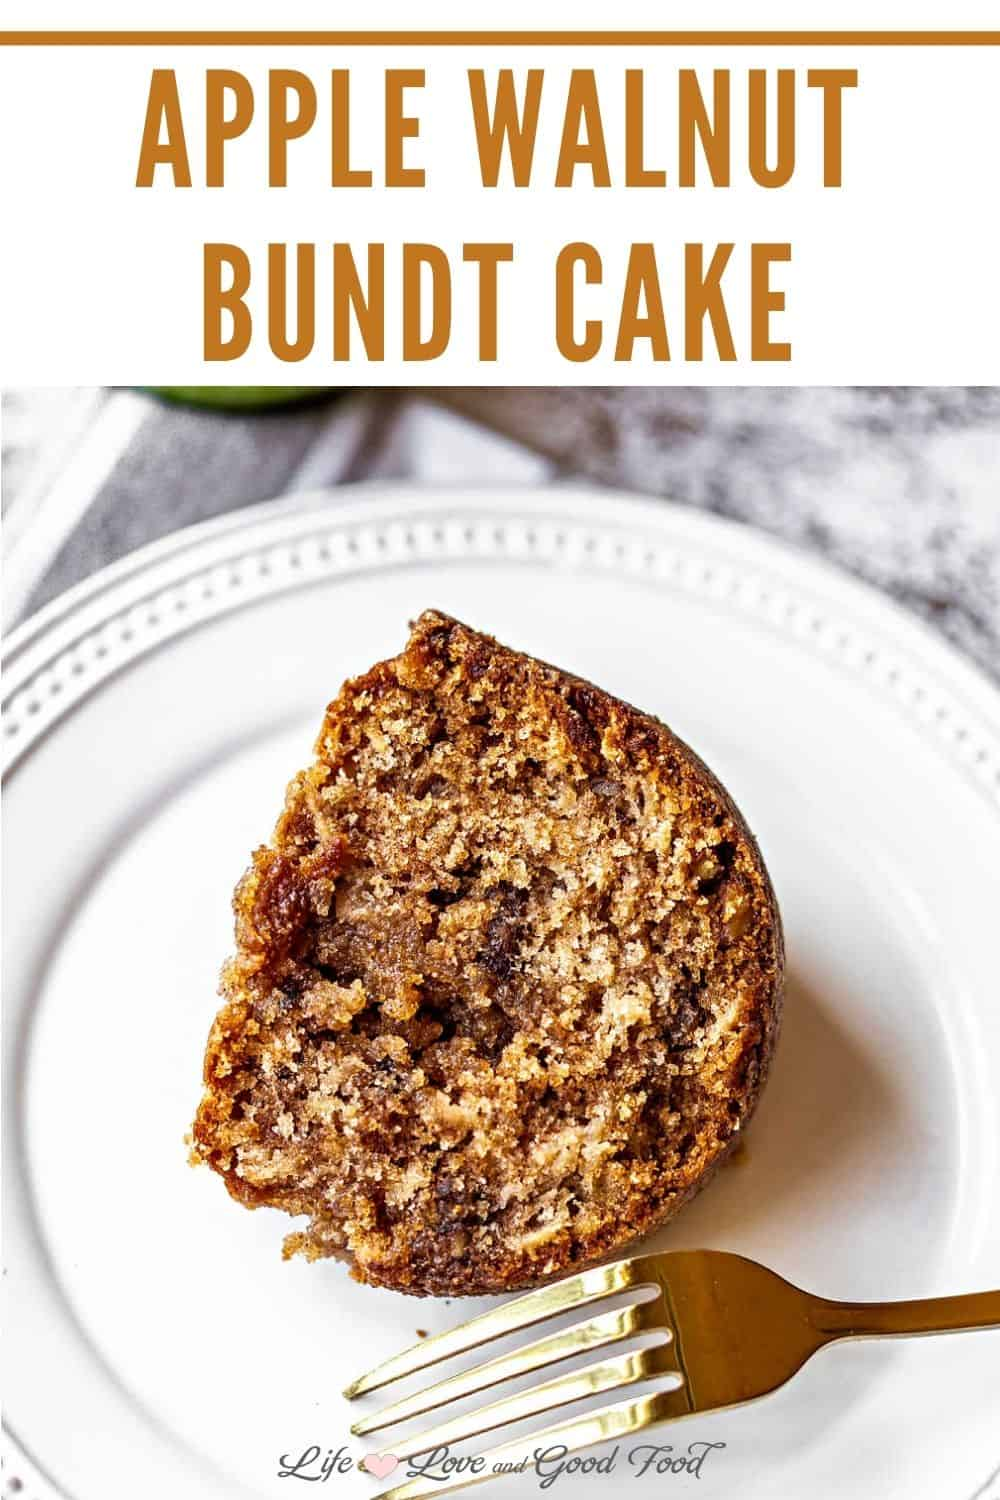 Apple Walnut Bundt Cake is not only the perfect fall dessert, it's downright apple-licious! Studded with tart Granny Smith apples, crunchy walnuts, and cinnamon spice, this Apple Bundt Cake is easy to prepare and stays fresh and super moist for days.